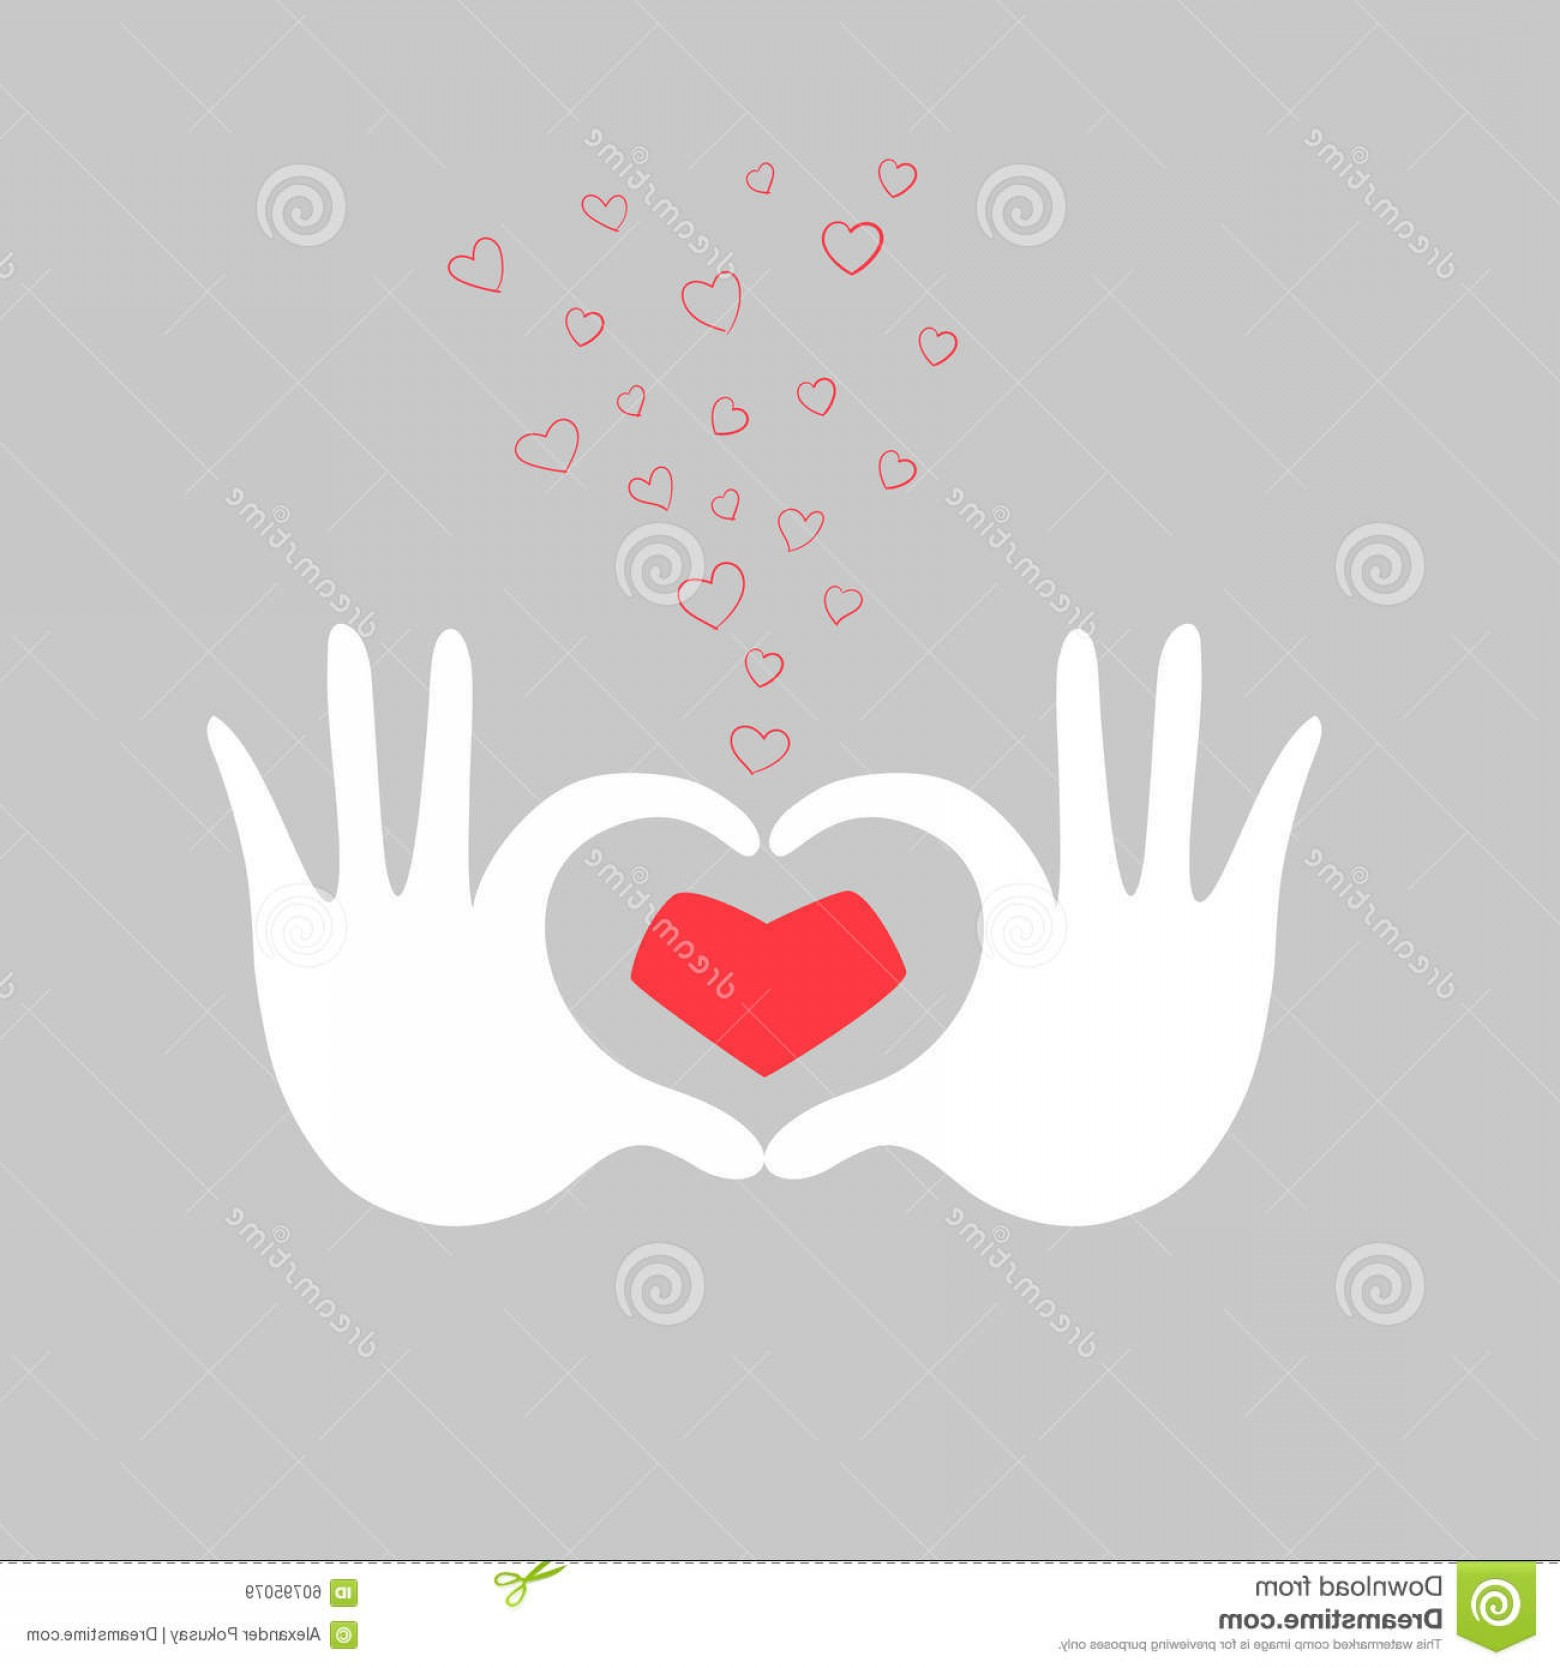 Heart Card Vector: Stock Illustration Hands Heart Love Greeting Card Vector Illustration Doodle Hand Drawn Image